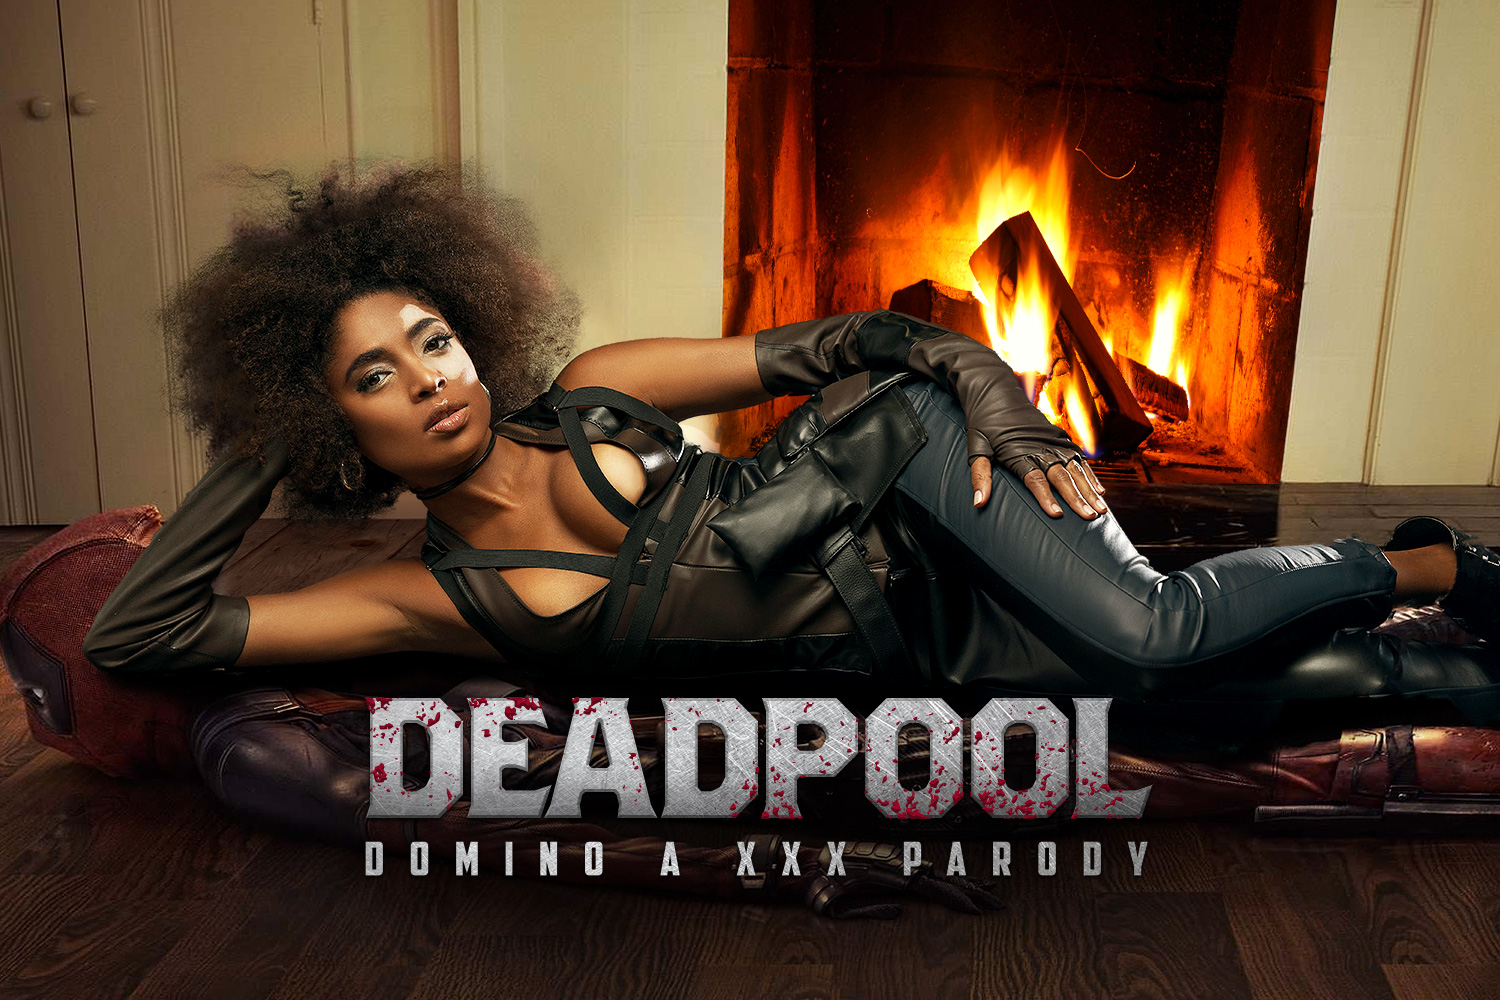 Deadpool: Domino A XXX Parody VR Porn Video